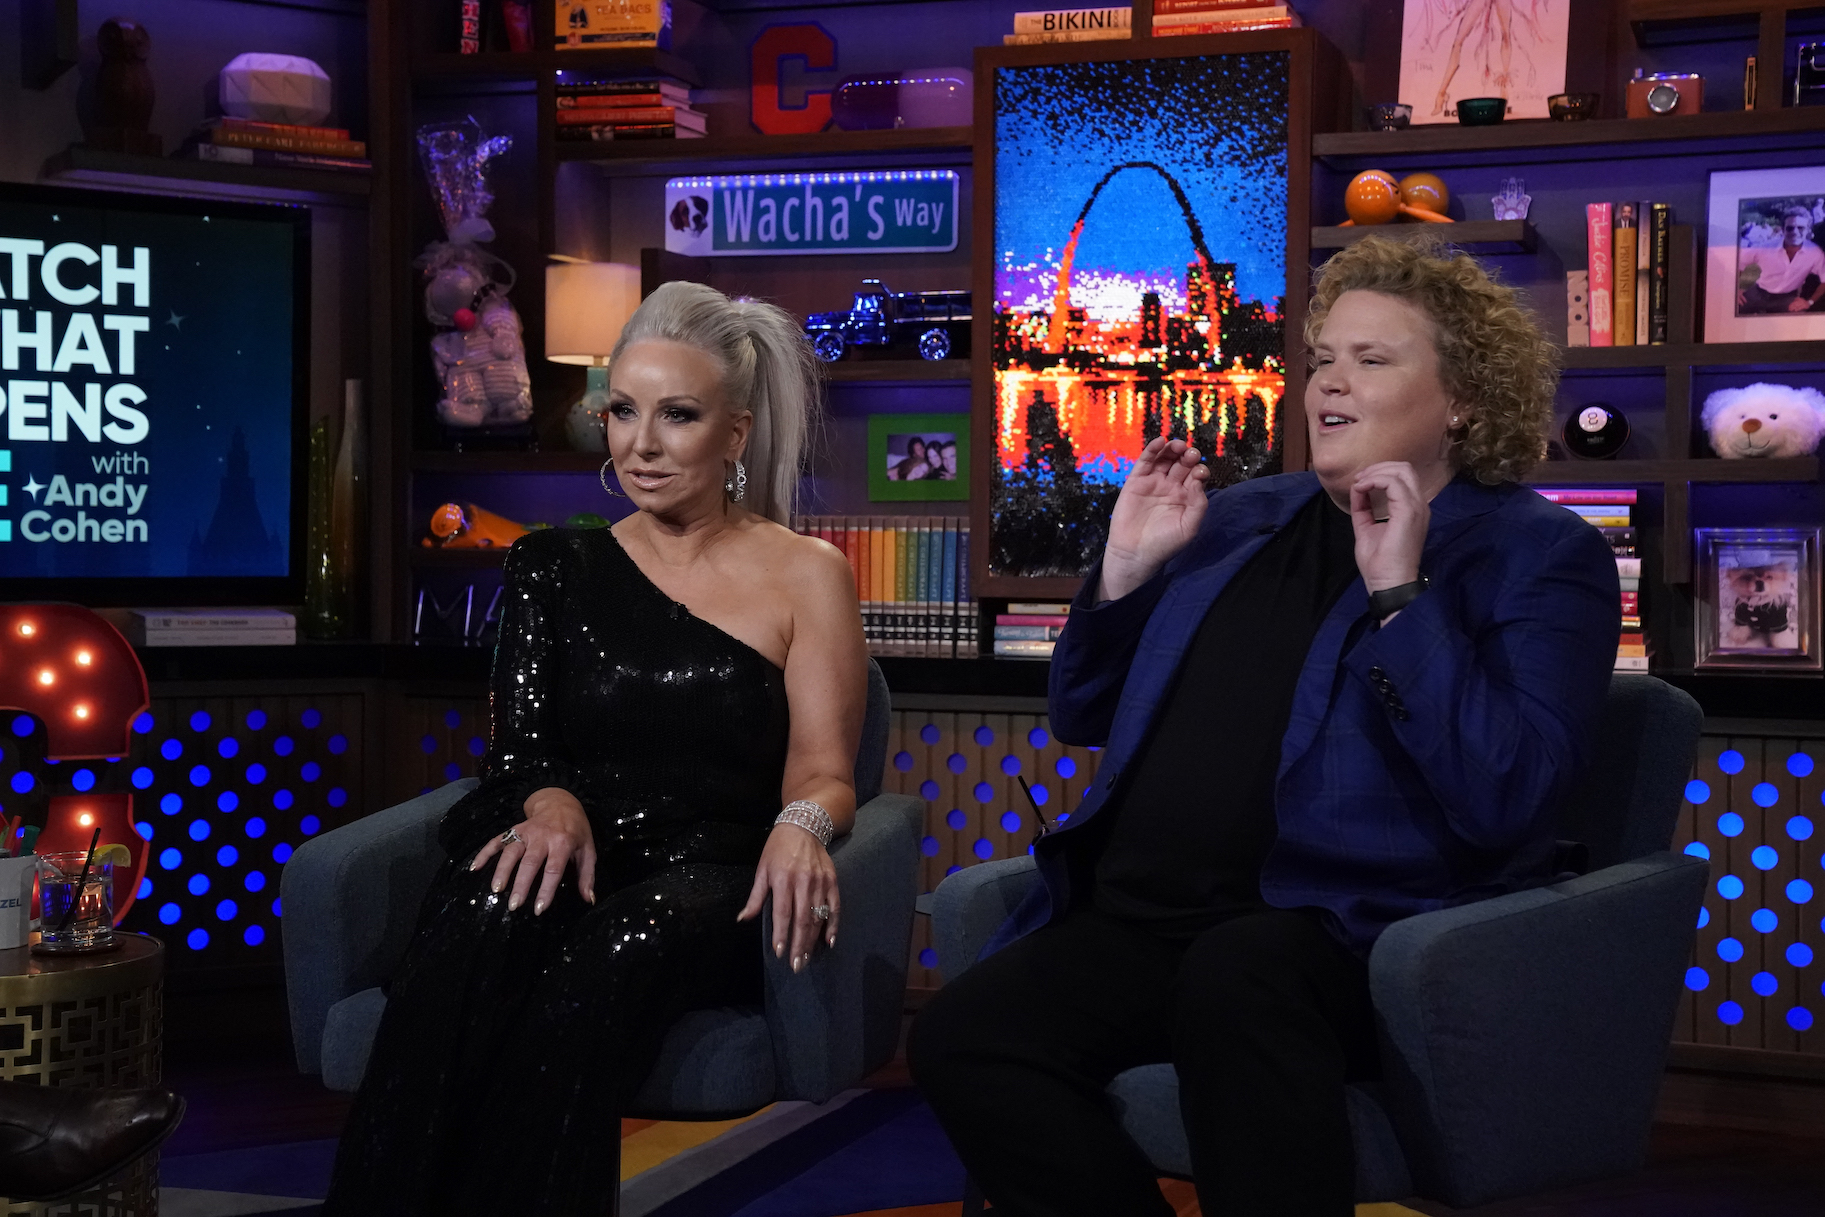 Watch What Happens Live Season 17 Episode Guide 17014